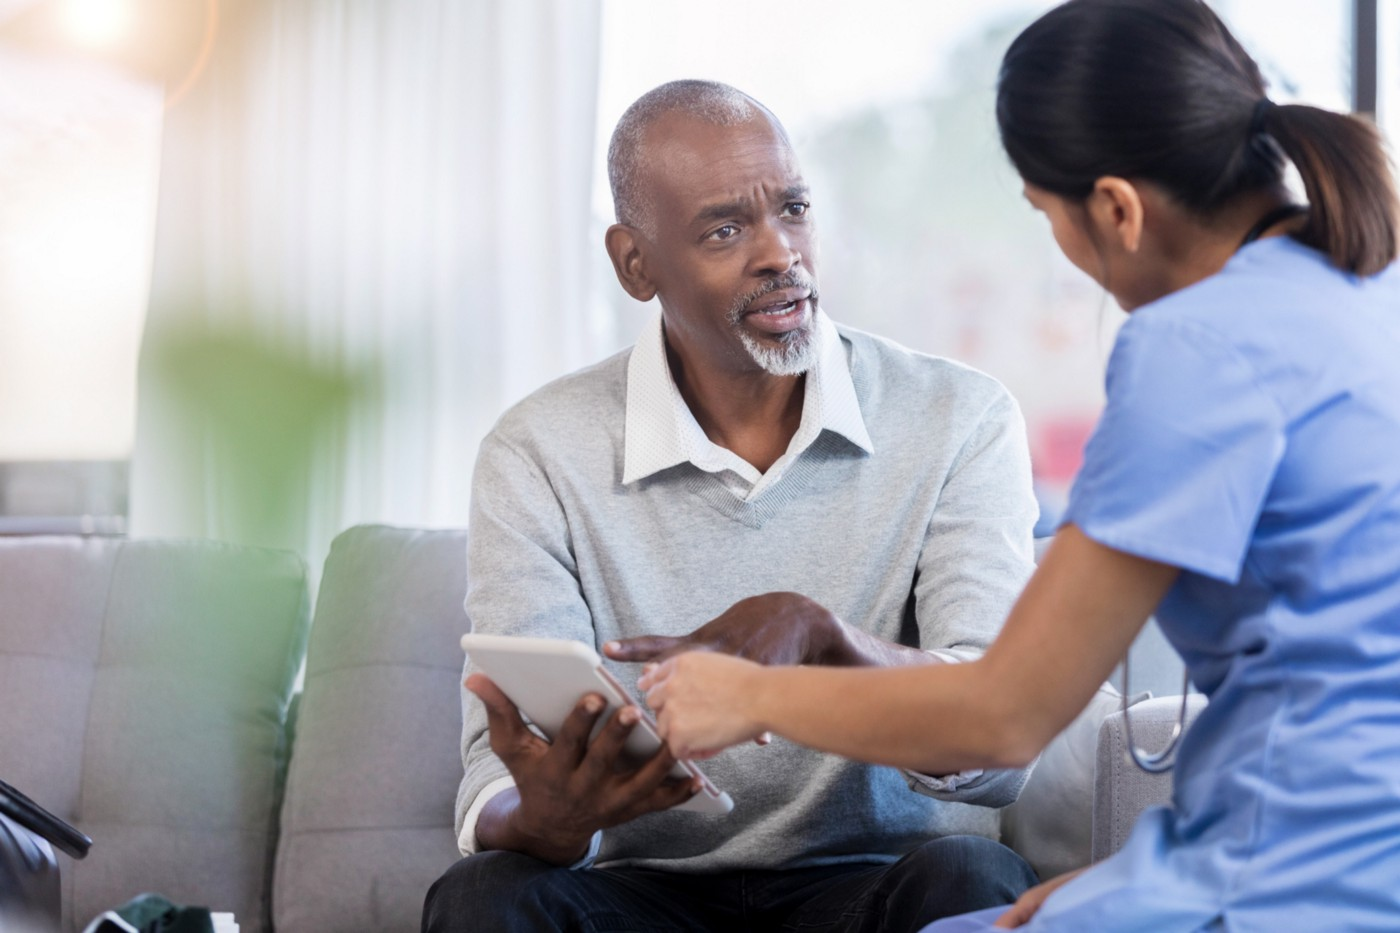 A man asks his doctor a question while pointing at his diagnosis on the tablet.